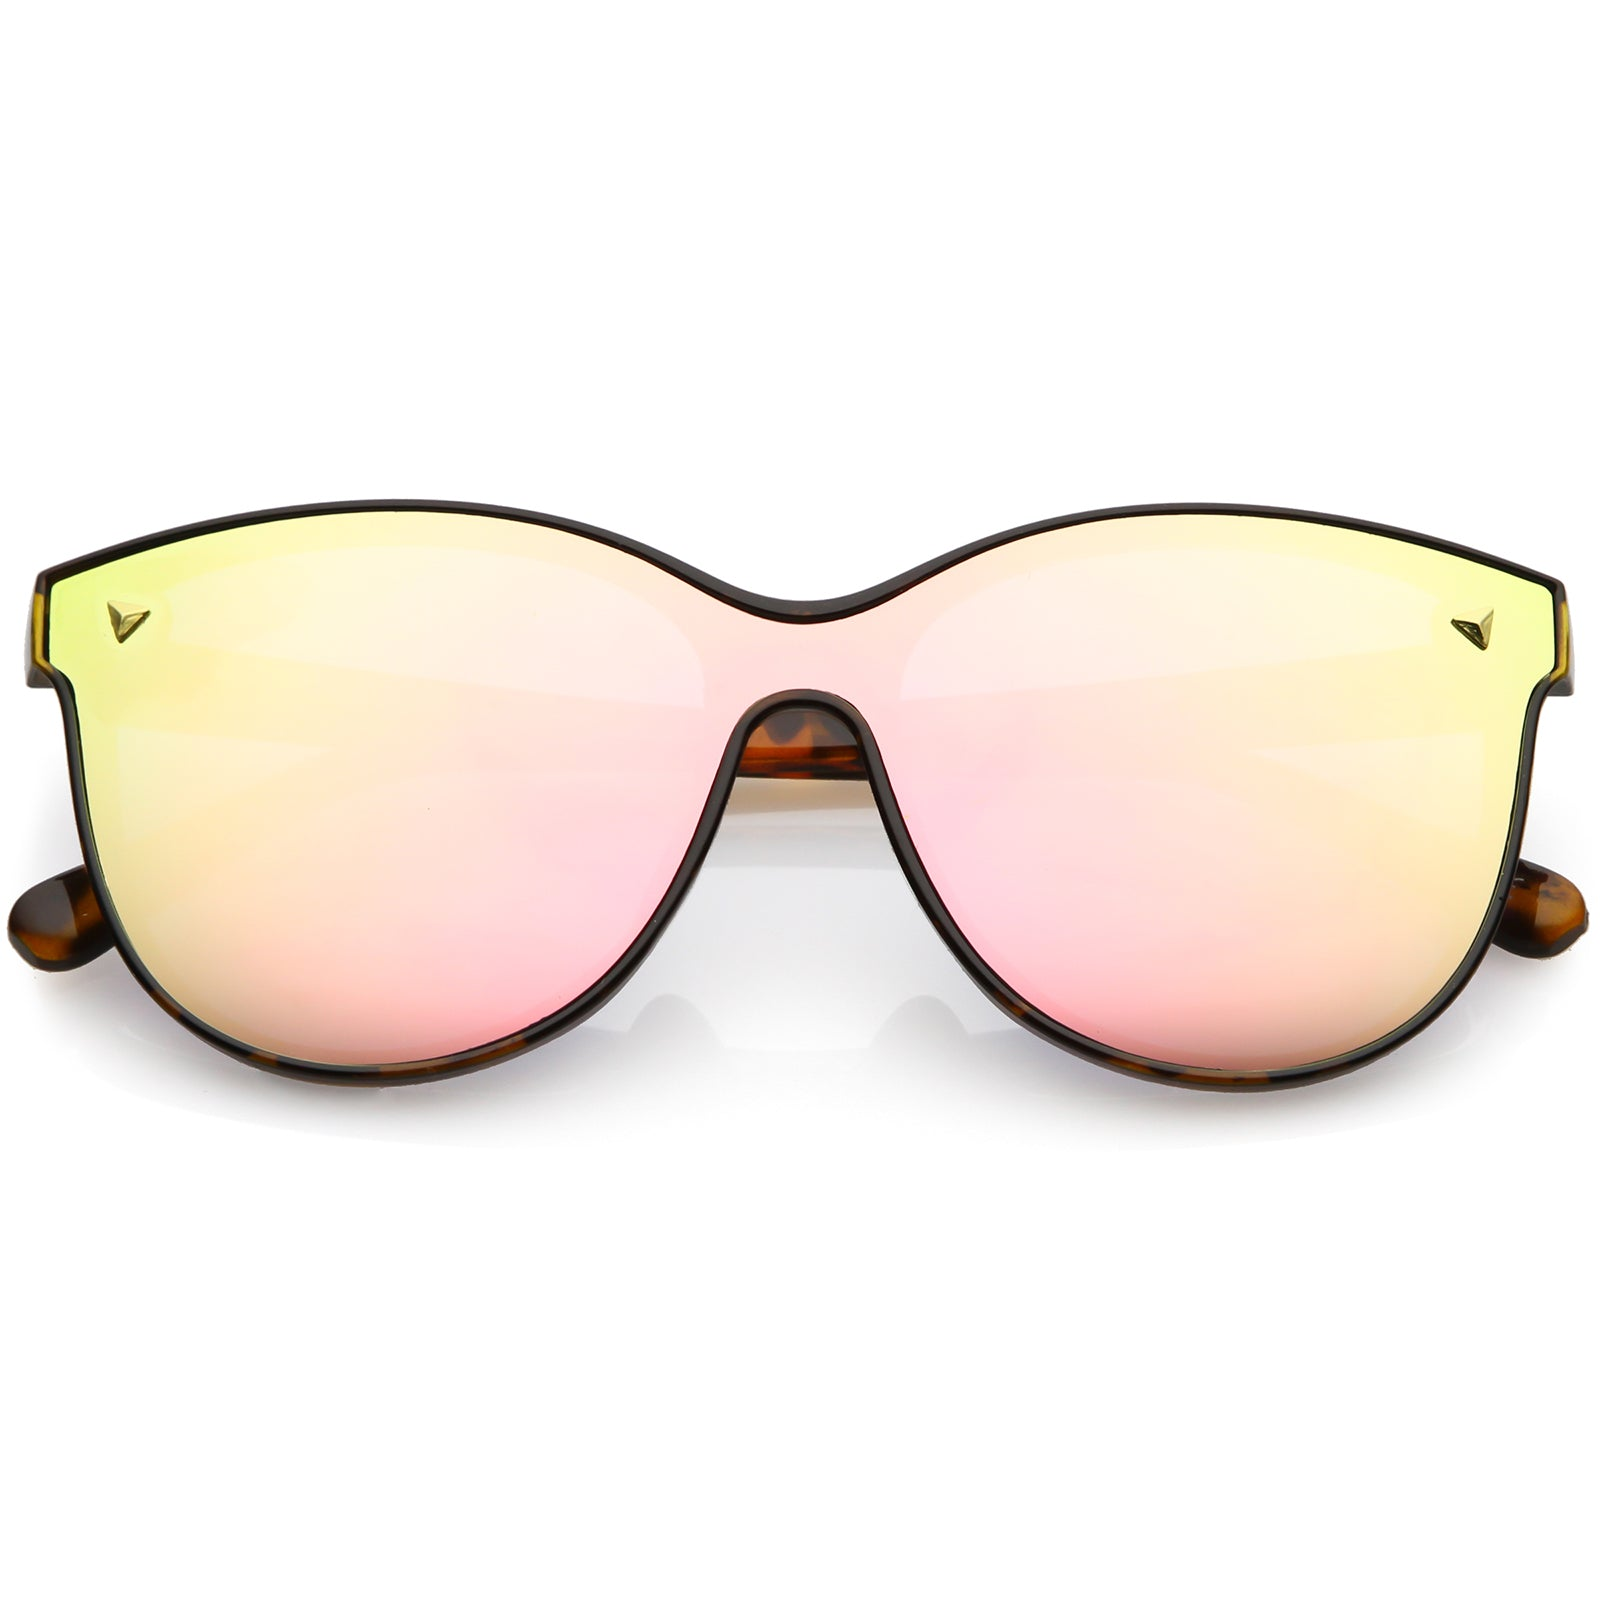 0a5c6924aa2e8 Modern Round Sunglasses Horned Rim Color Mirrored Flat Lens 58mm ...